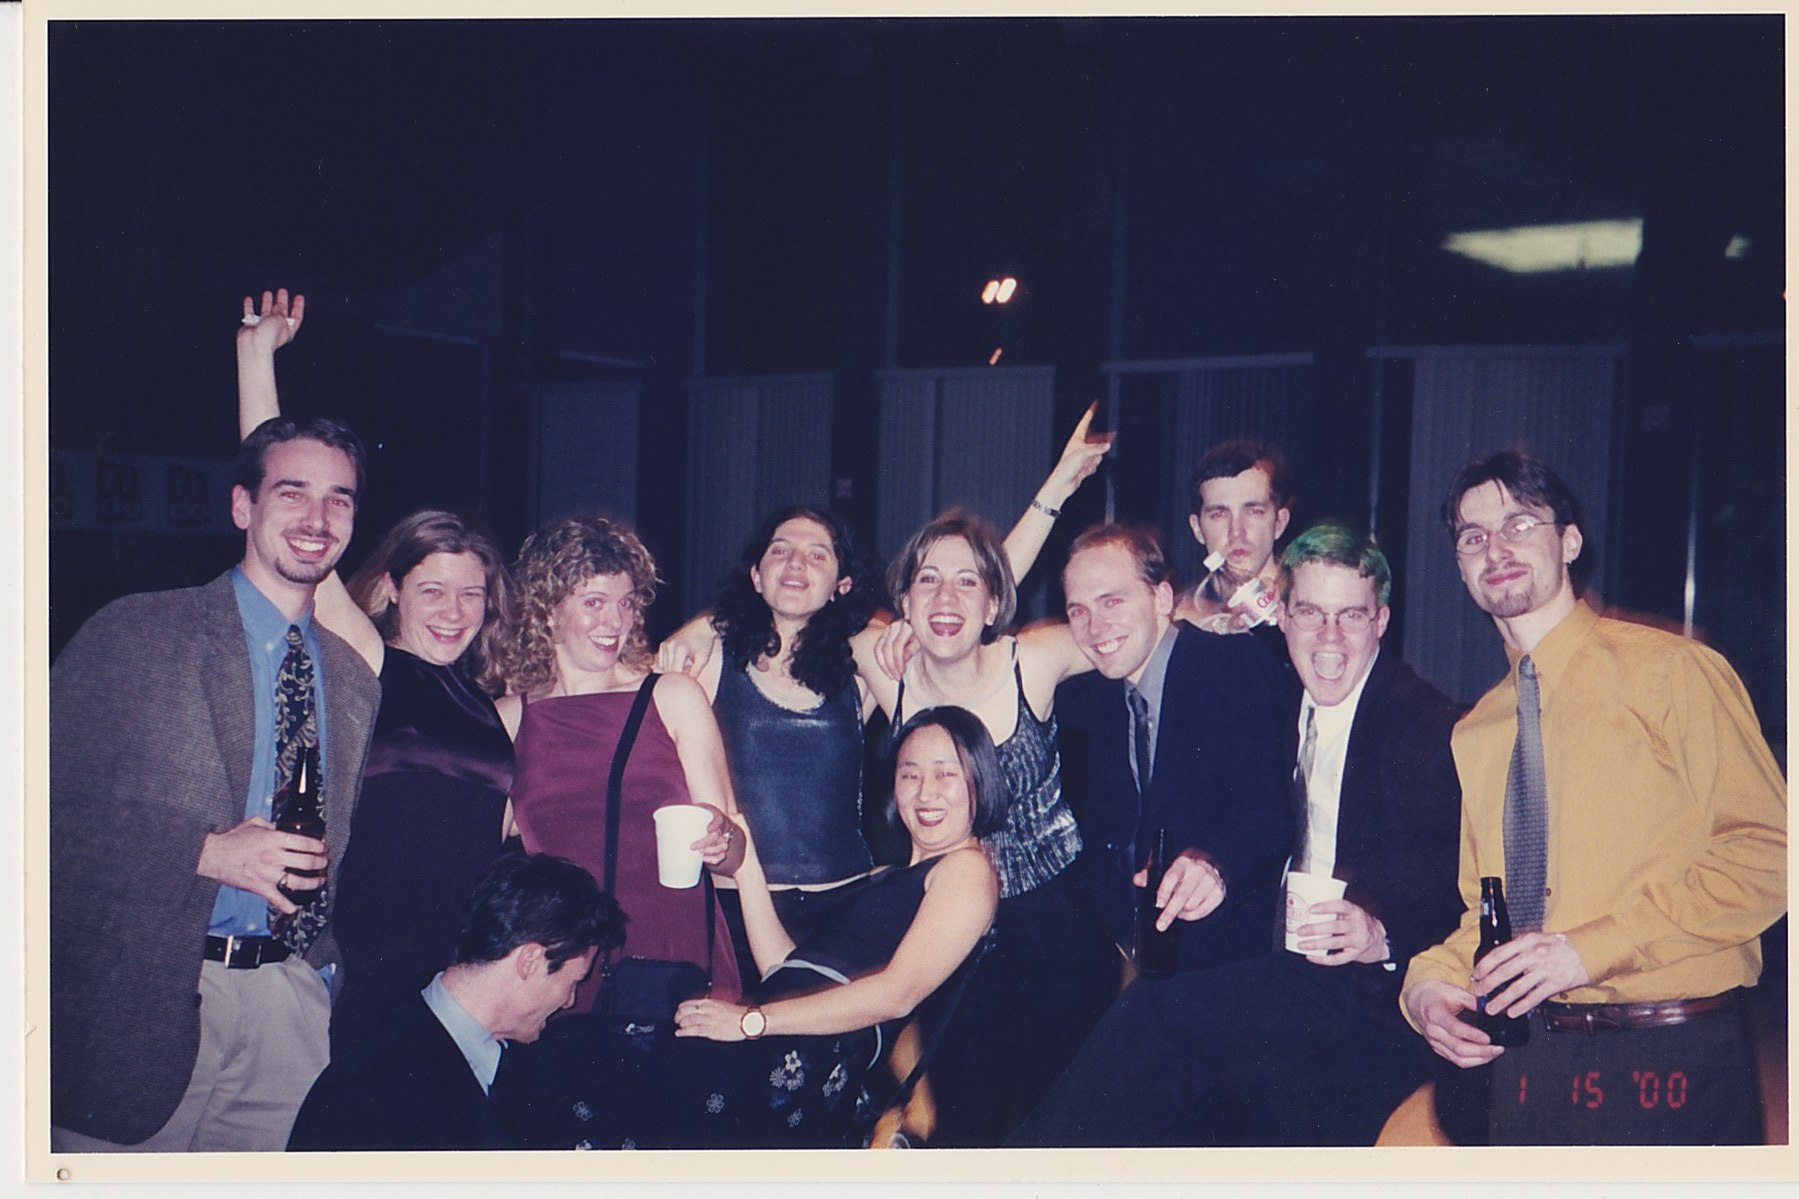 Chris at Law Games 2000 in Ottawa with her law class peeps, celebrating victory